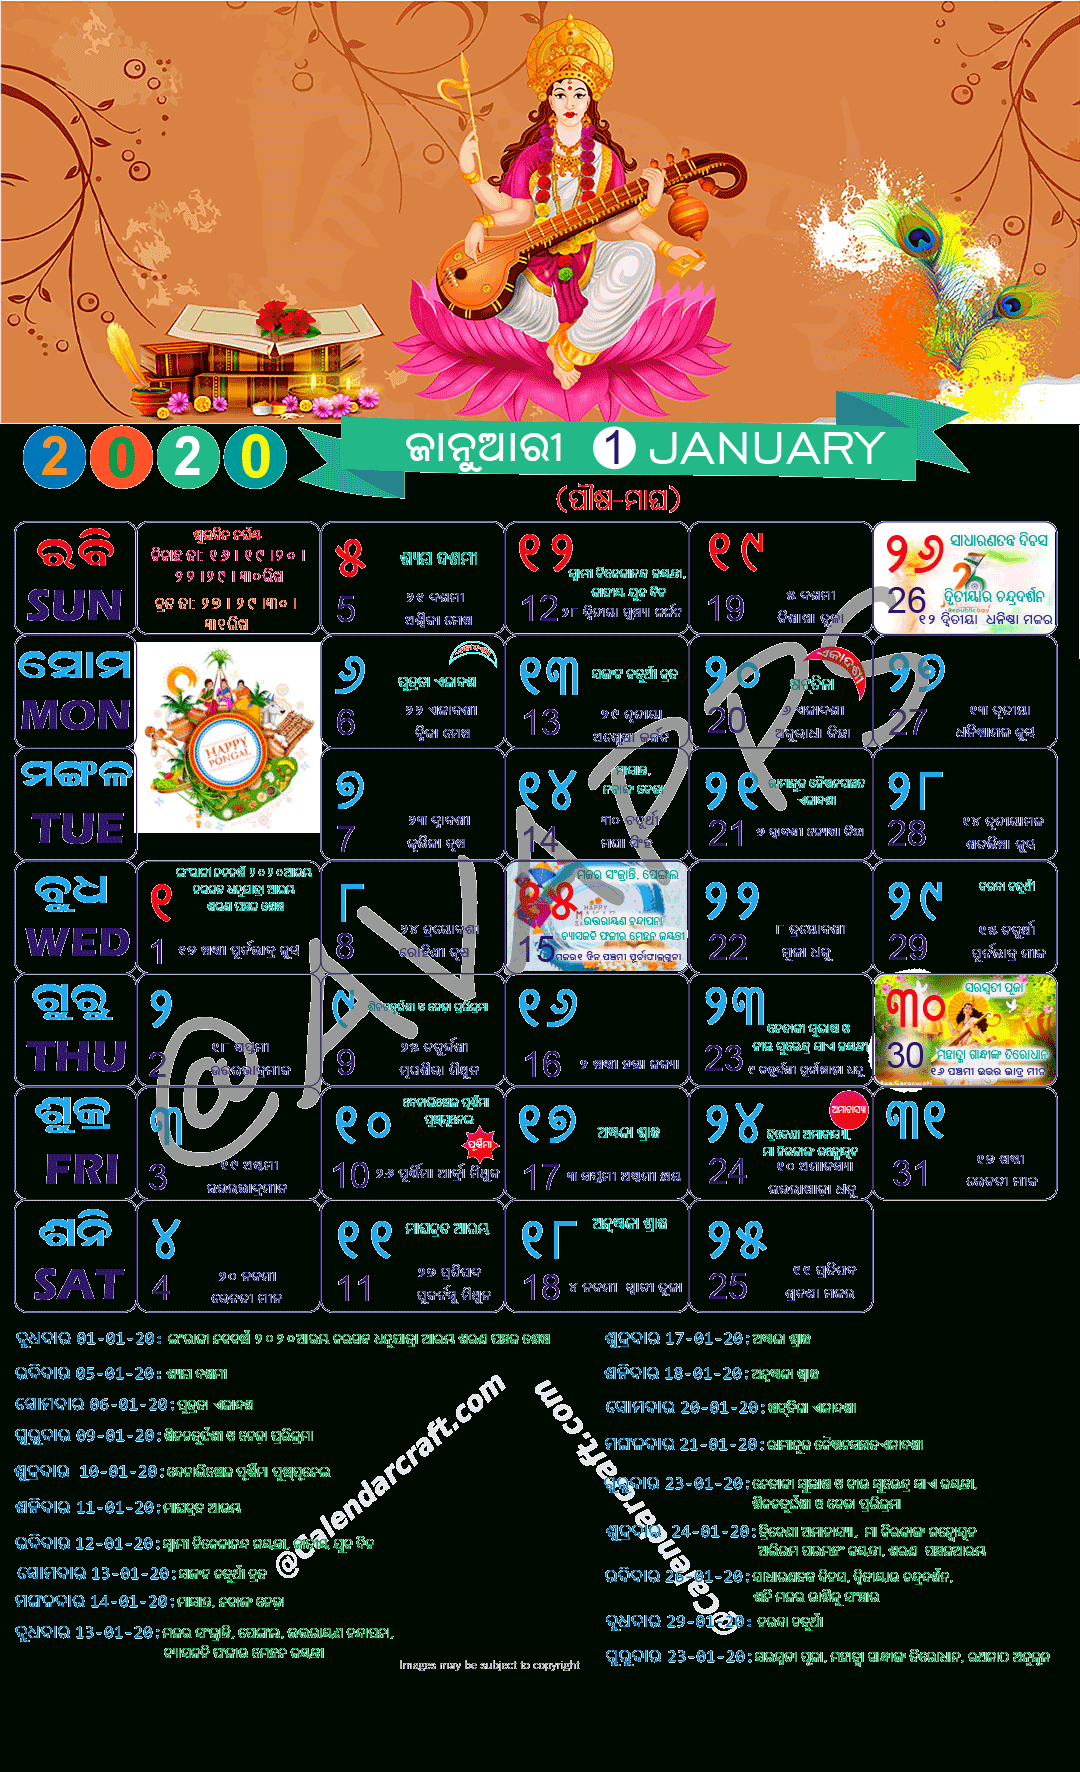 Odia Calendar 2020 Kohinoor Pdf | Seg with regard to Odia Calendar February 2020